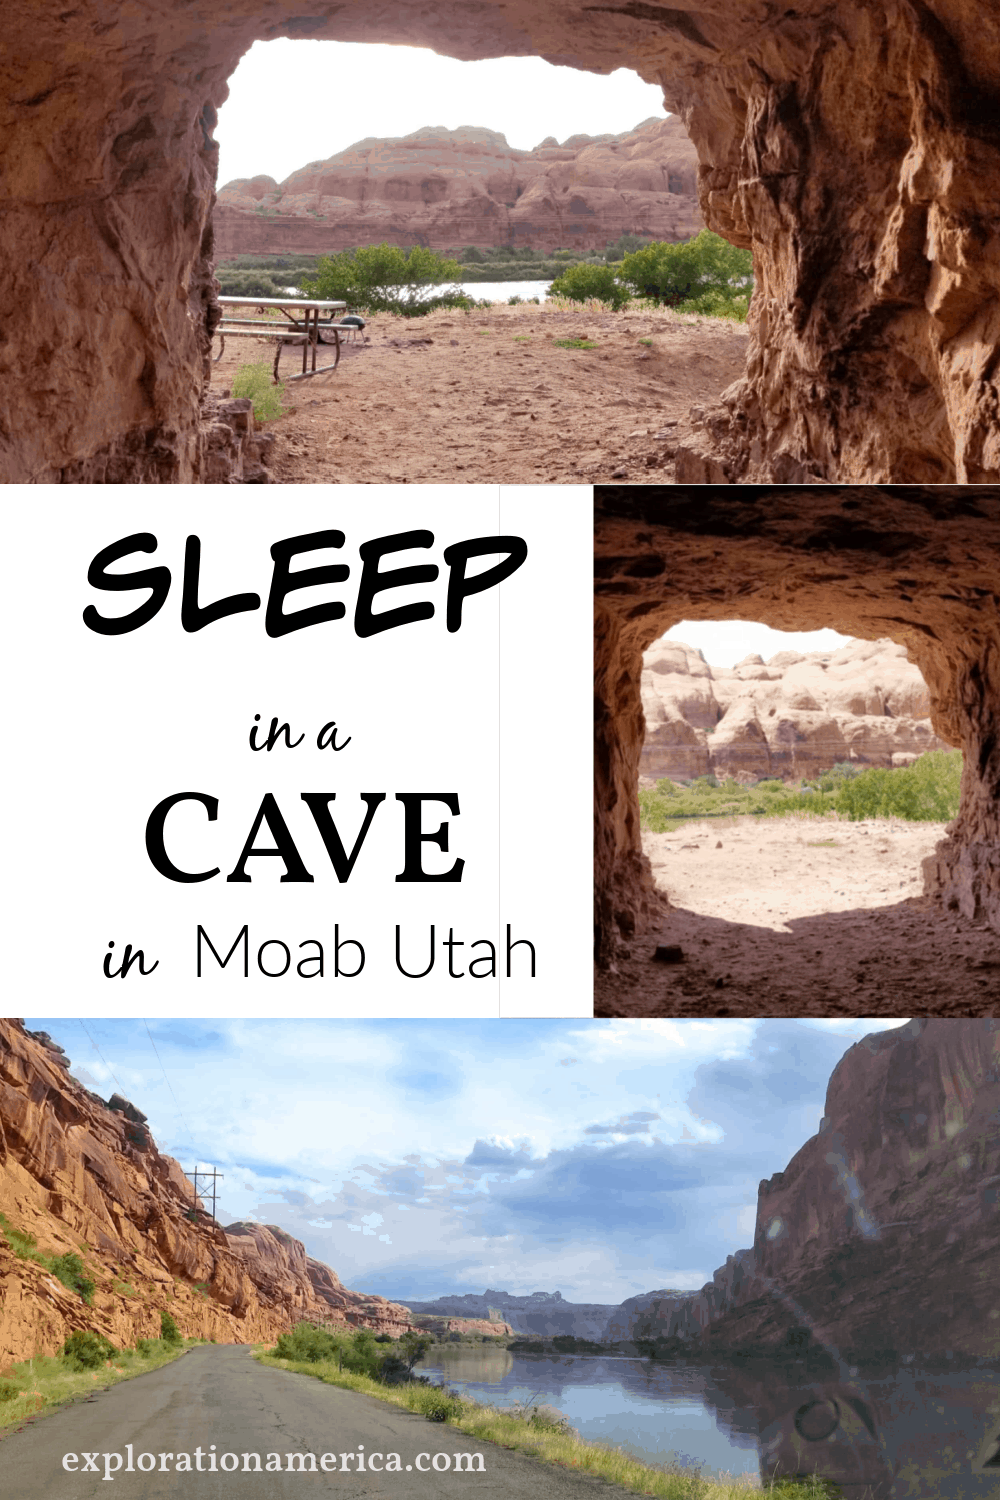 Camping in a Cave in Moab Utah